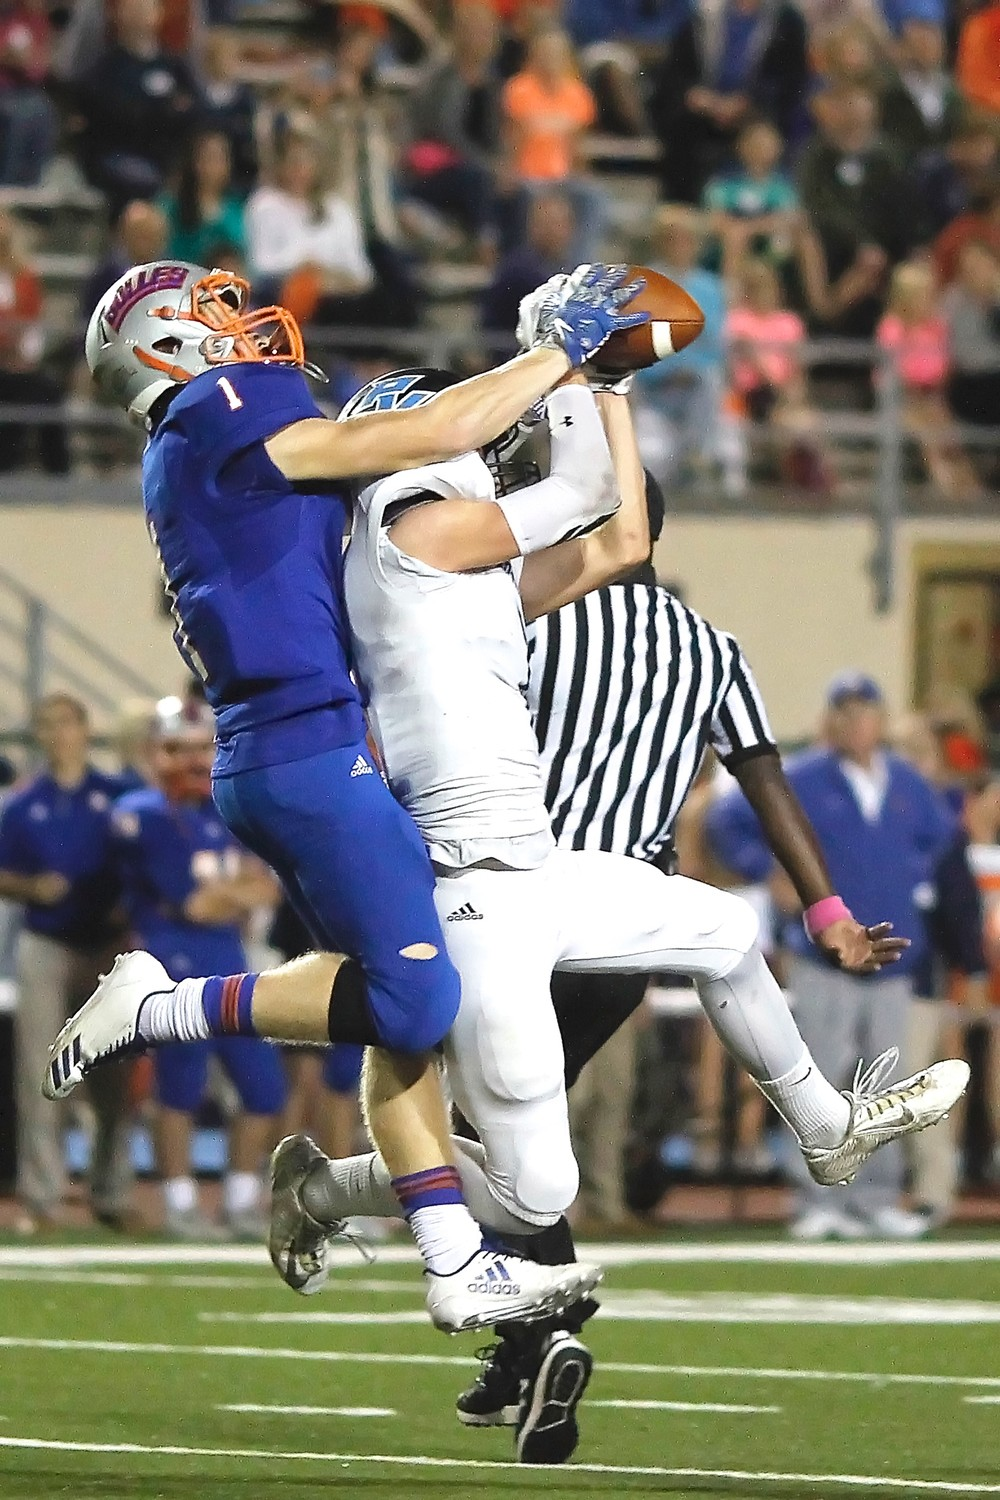 Jarrett Stepp pulls in the ball in front of the Bolles defender.